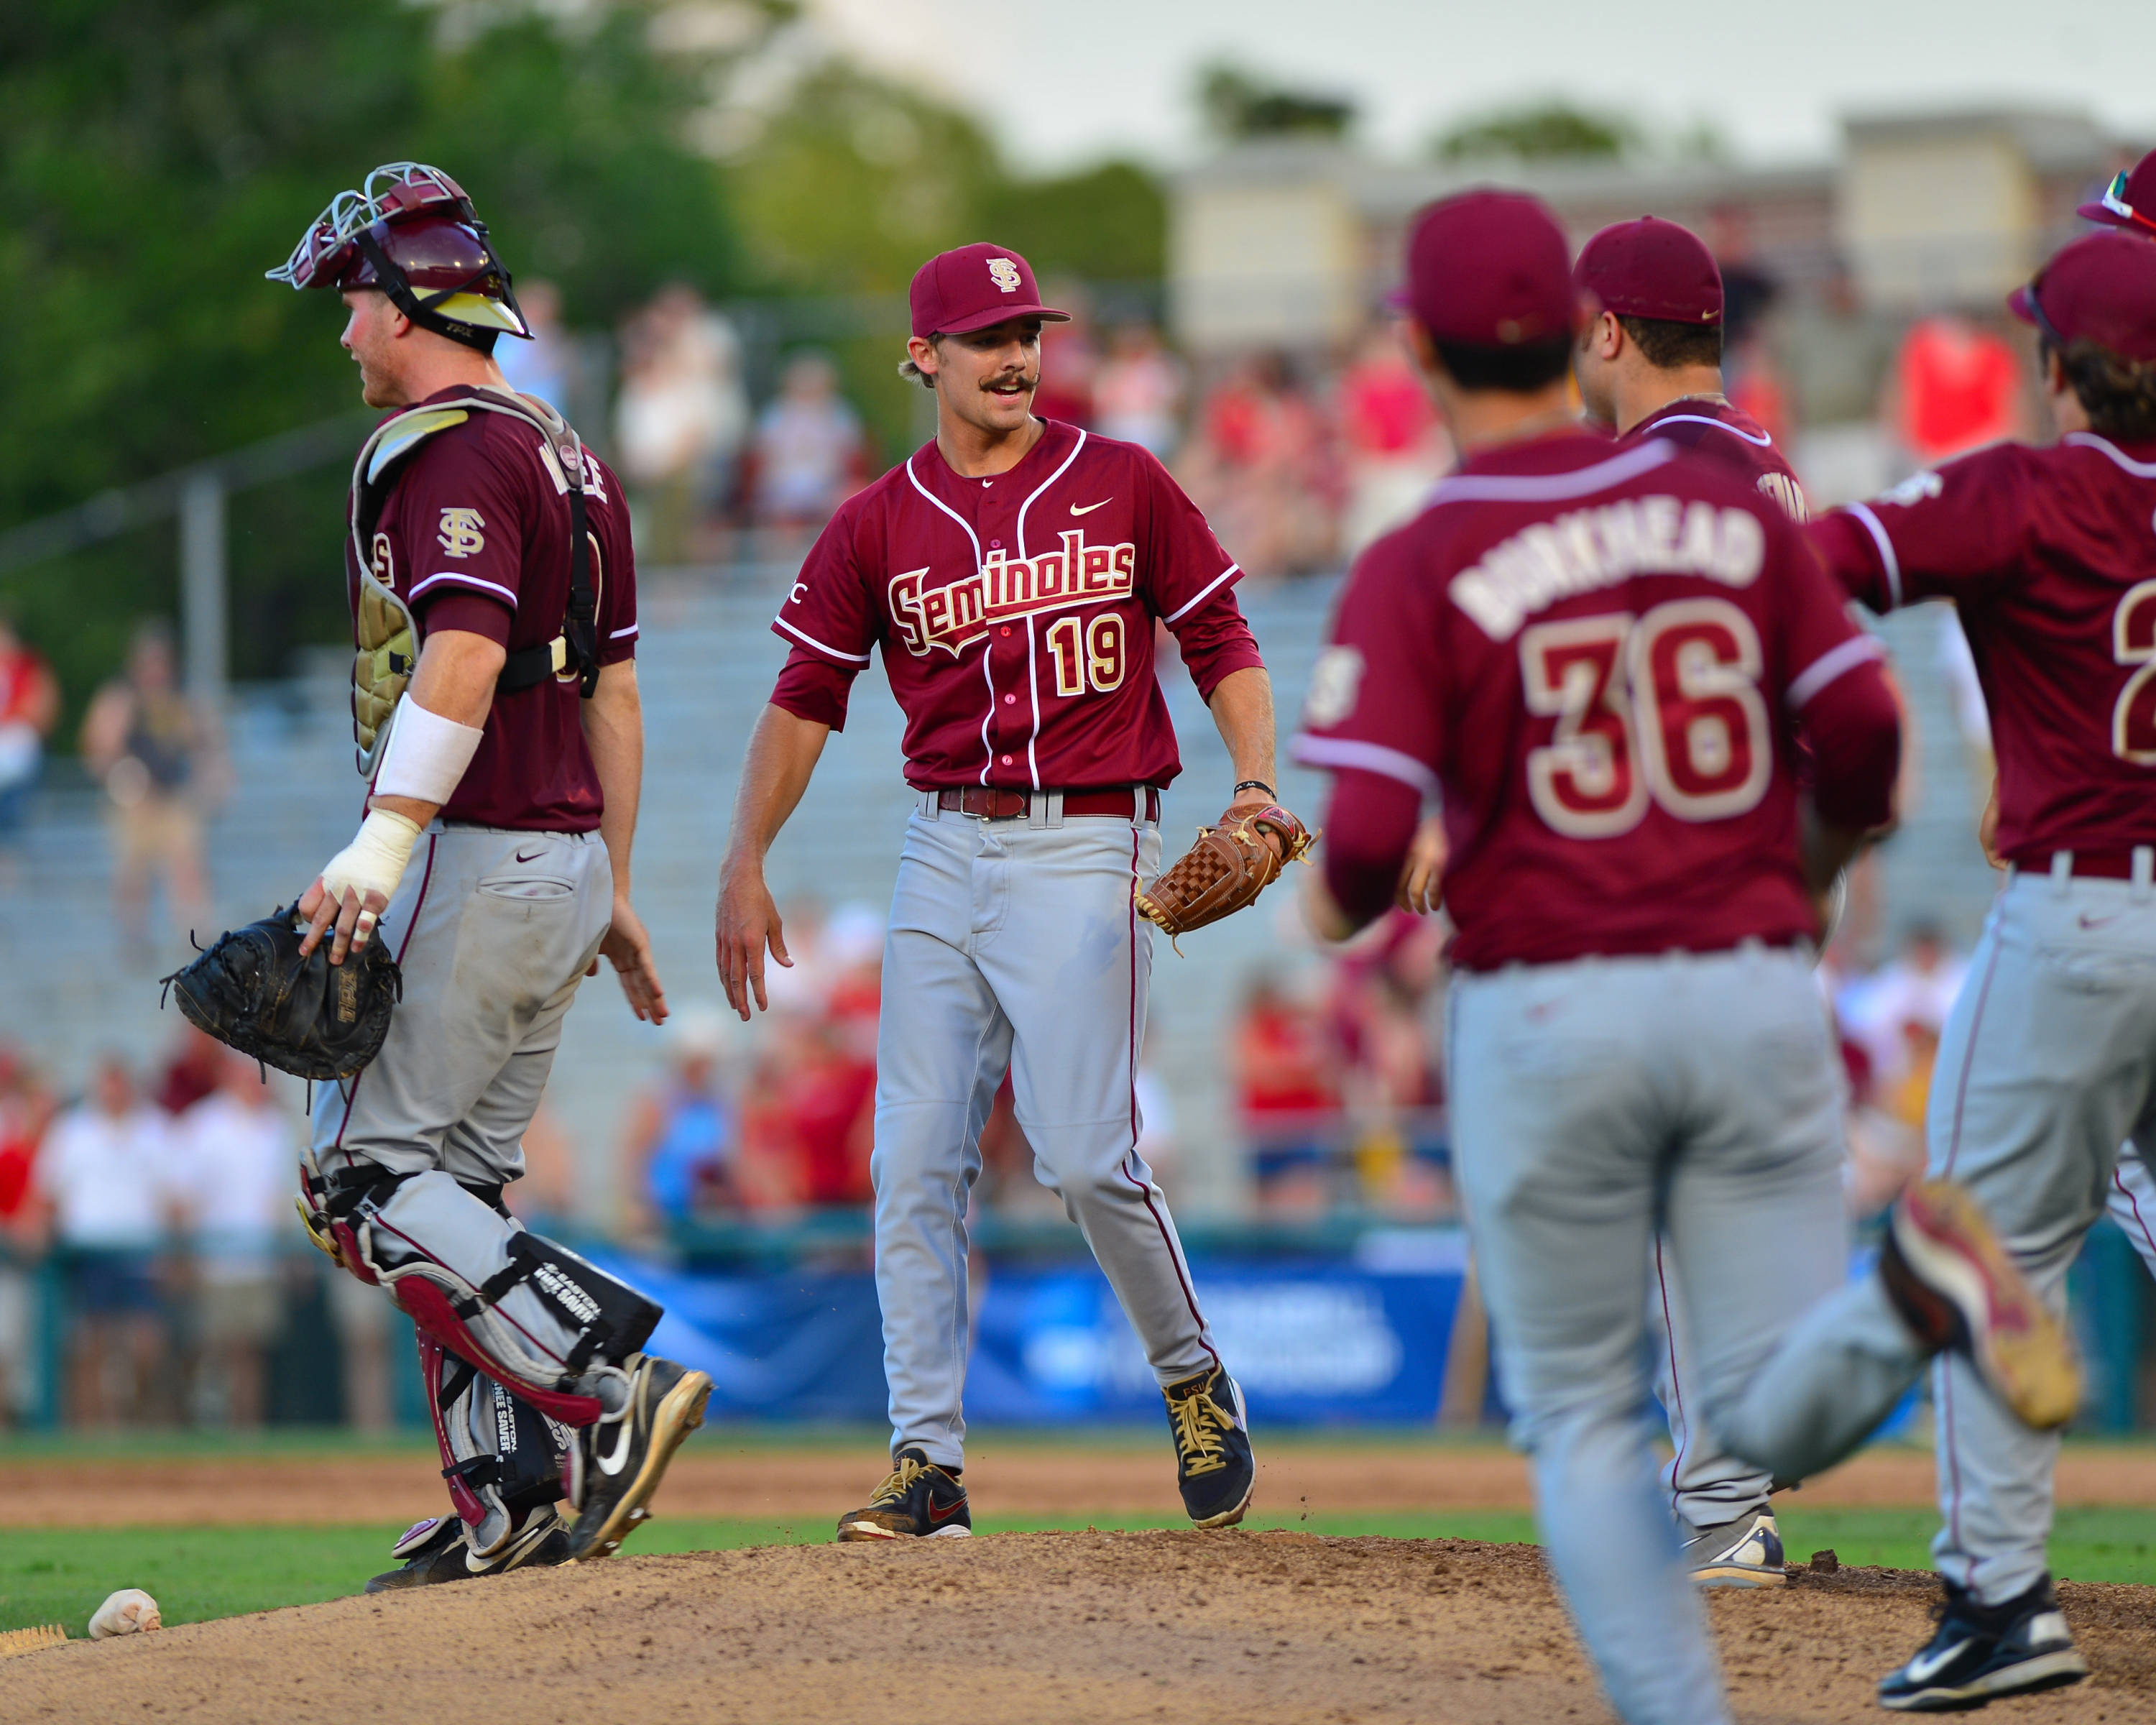 The Seminoles celebrate on the mound following Saturday's victory over Troy.